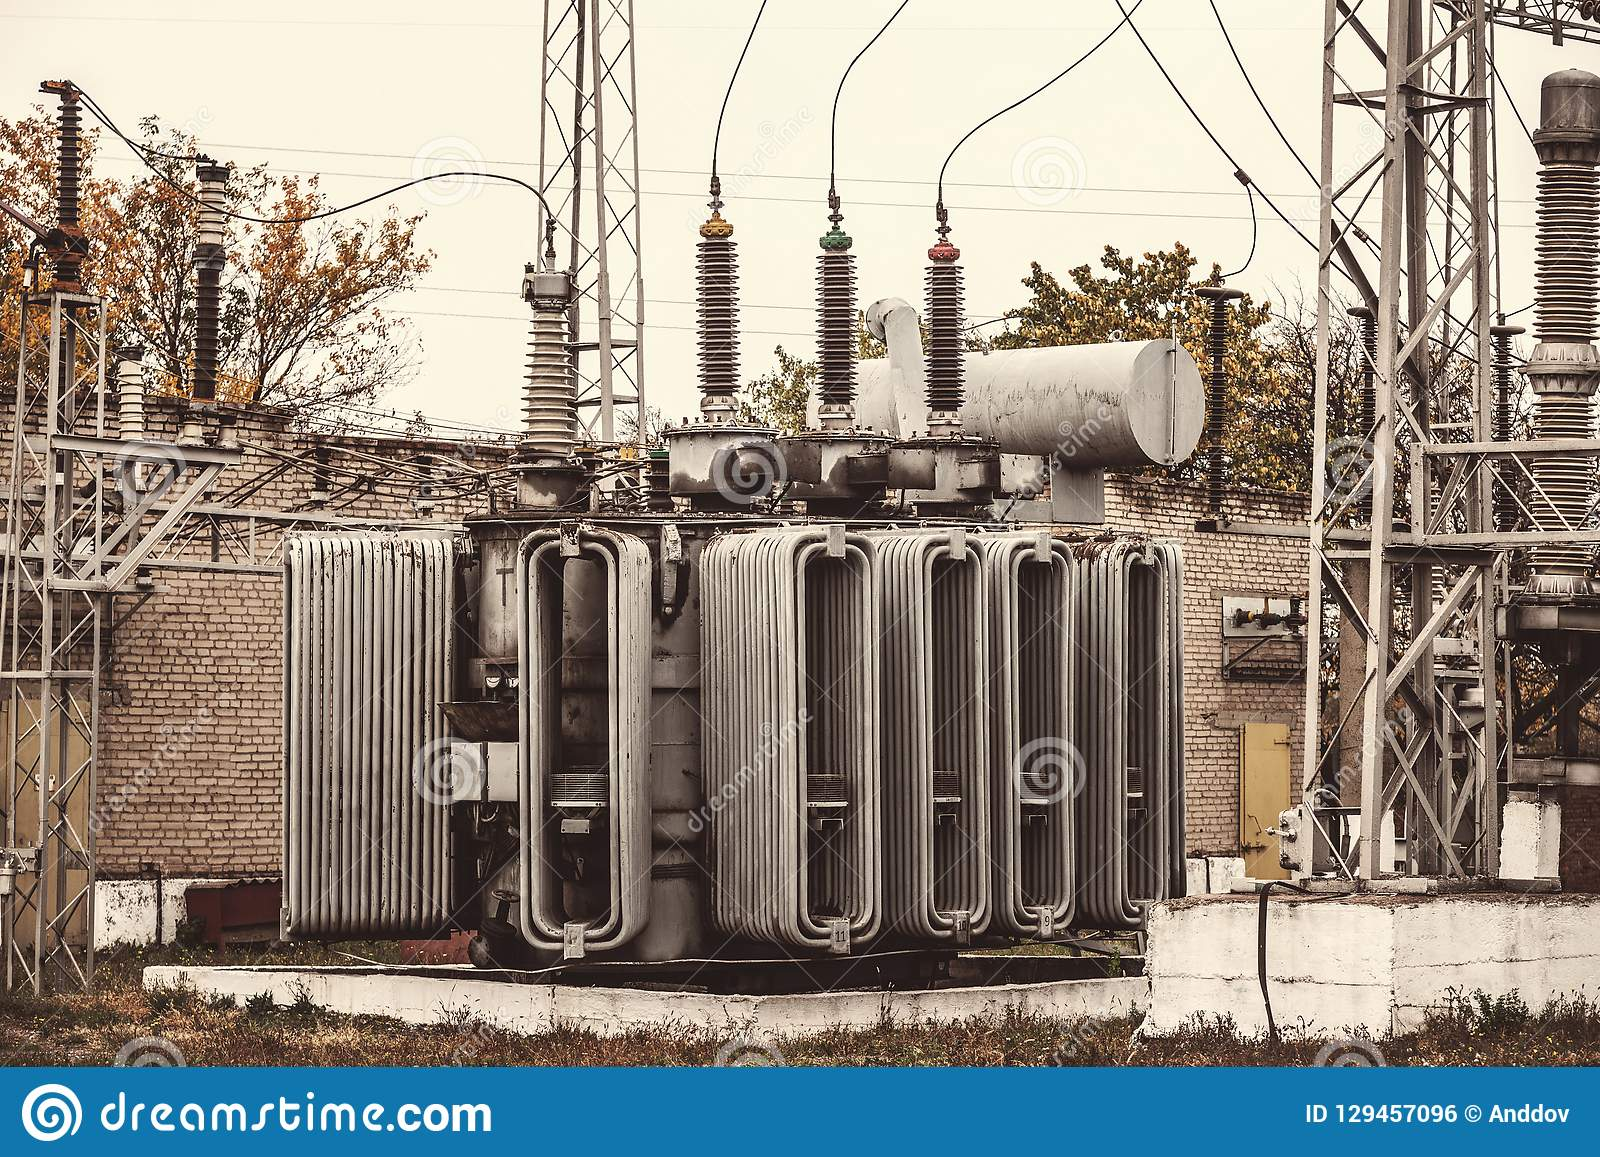 Transformer Substation, High-voltage Switchgear And